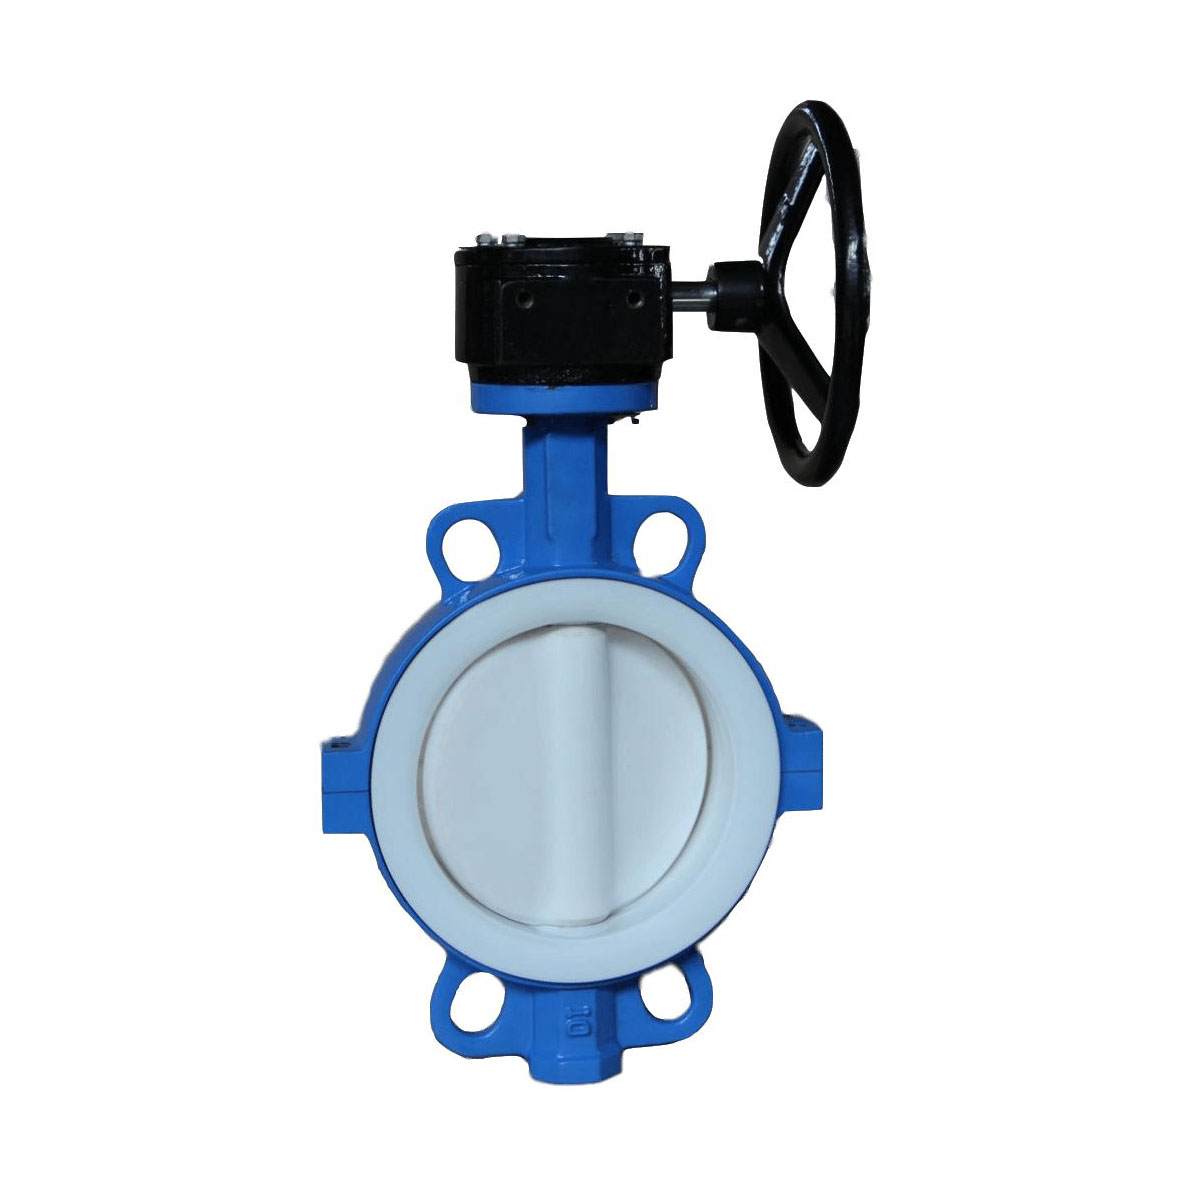 Dn150 Cast Iron Gg25 Sea Water Split Body Wafer Style Butterfly Valve - Buy  Sea Water Butterfly Valve,Split Body Wafer Style Butterfly Valve,Dn150